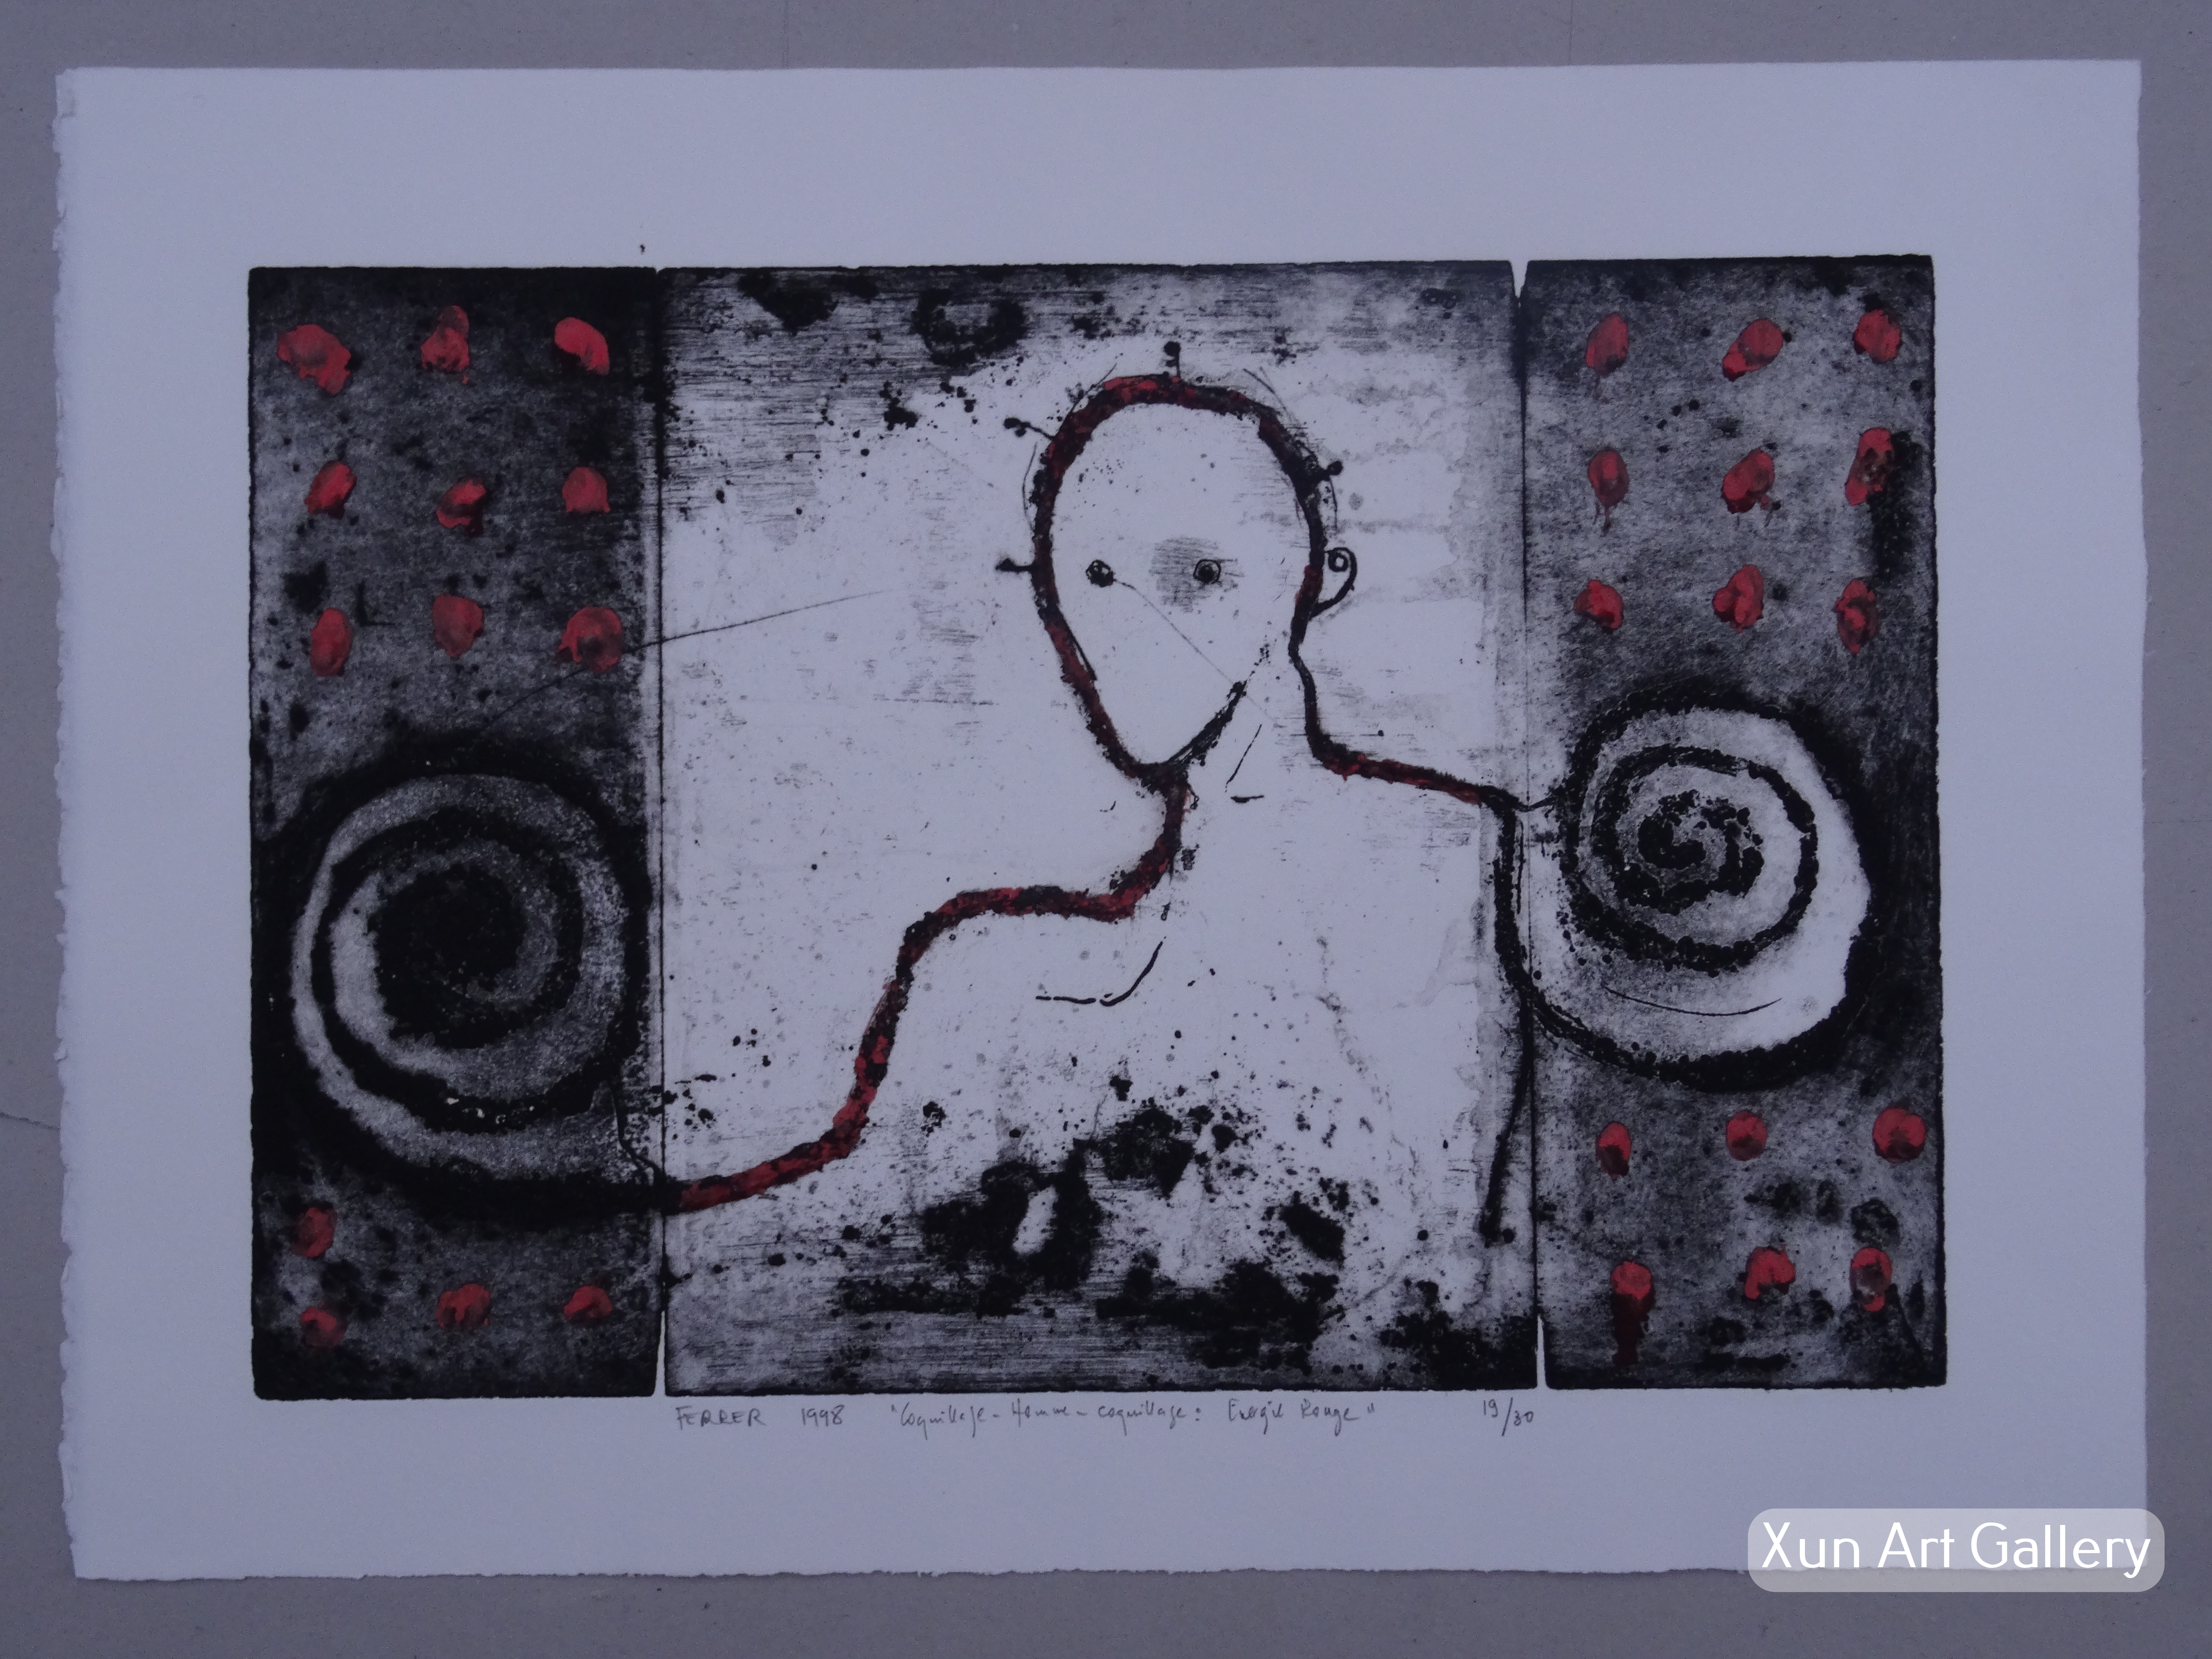 Guy FERRER - COQUILLAGE-HOMME-COQUILLAGE ENERGIE ROUGE